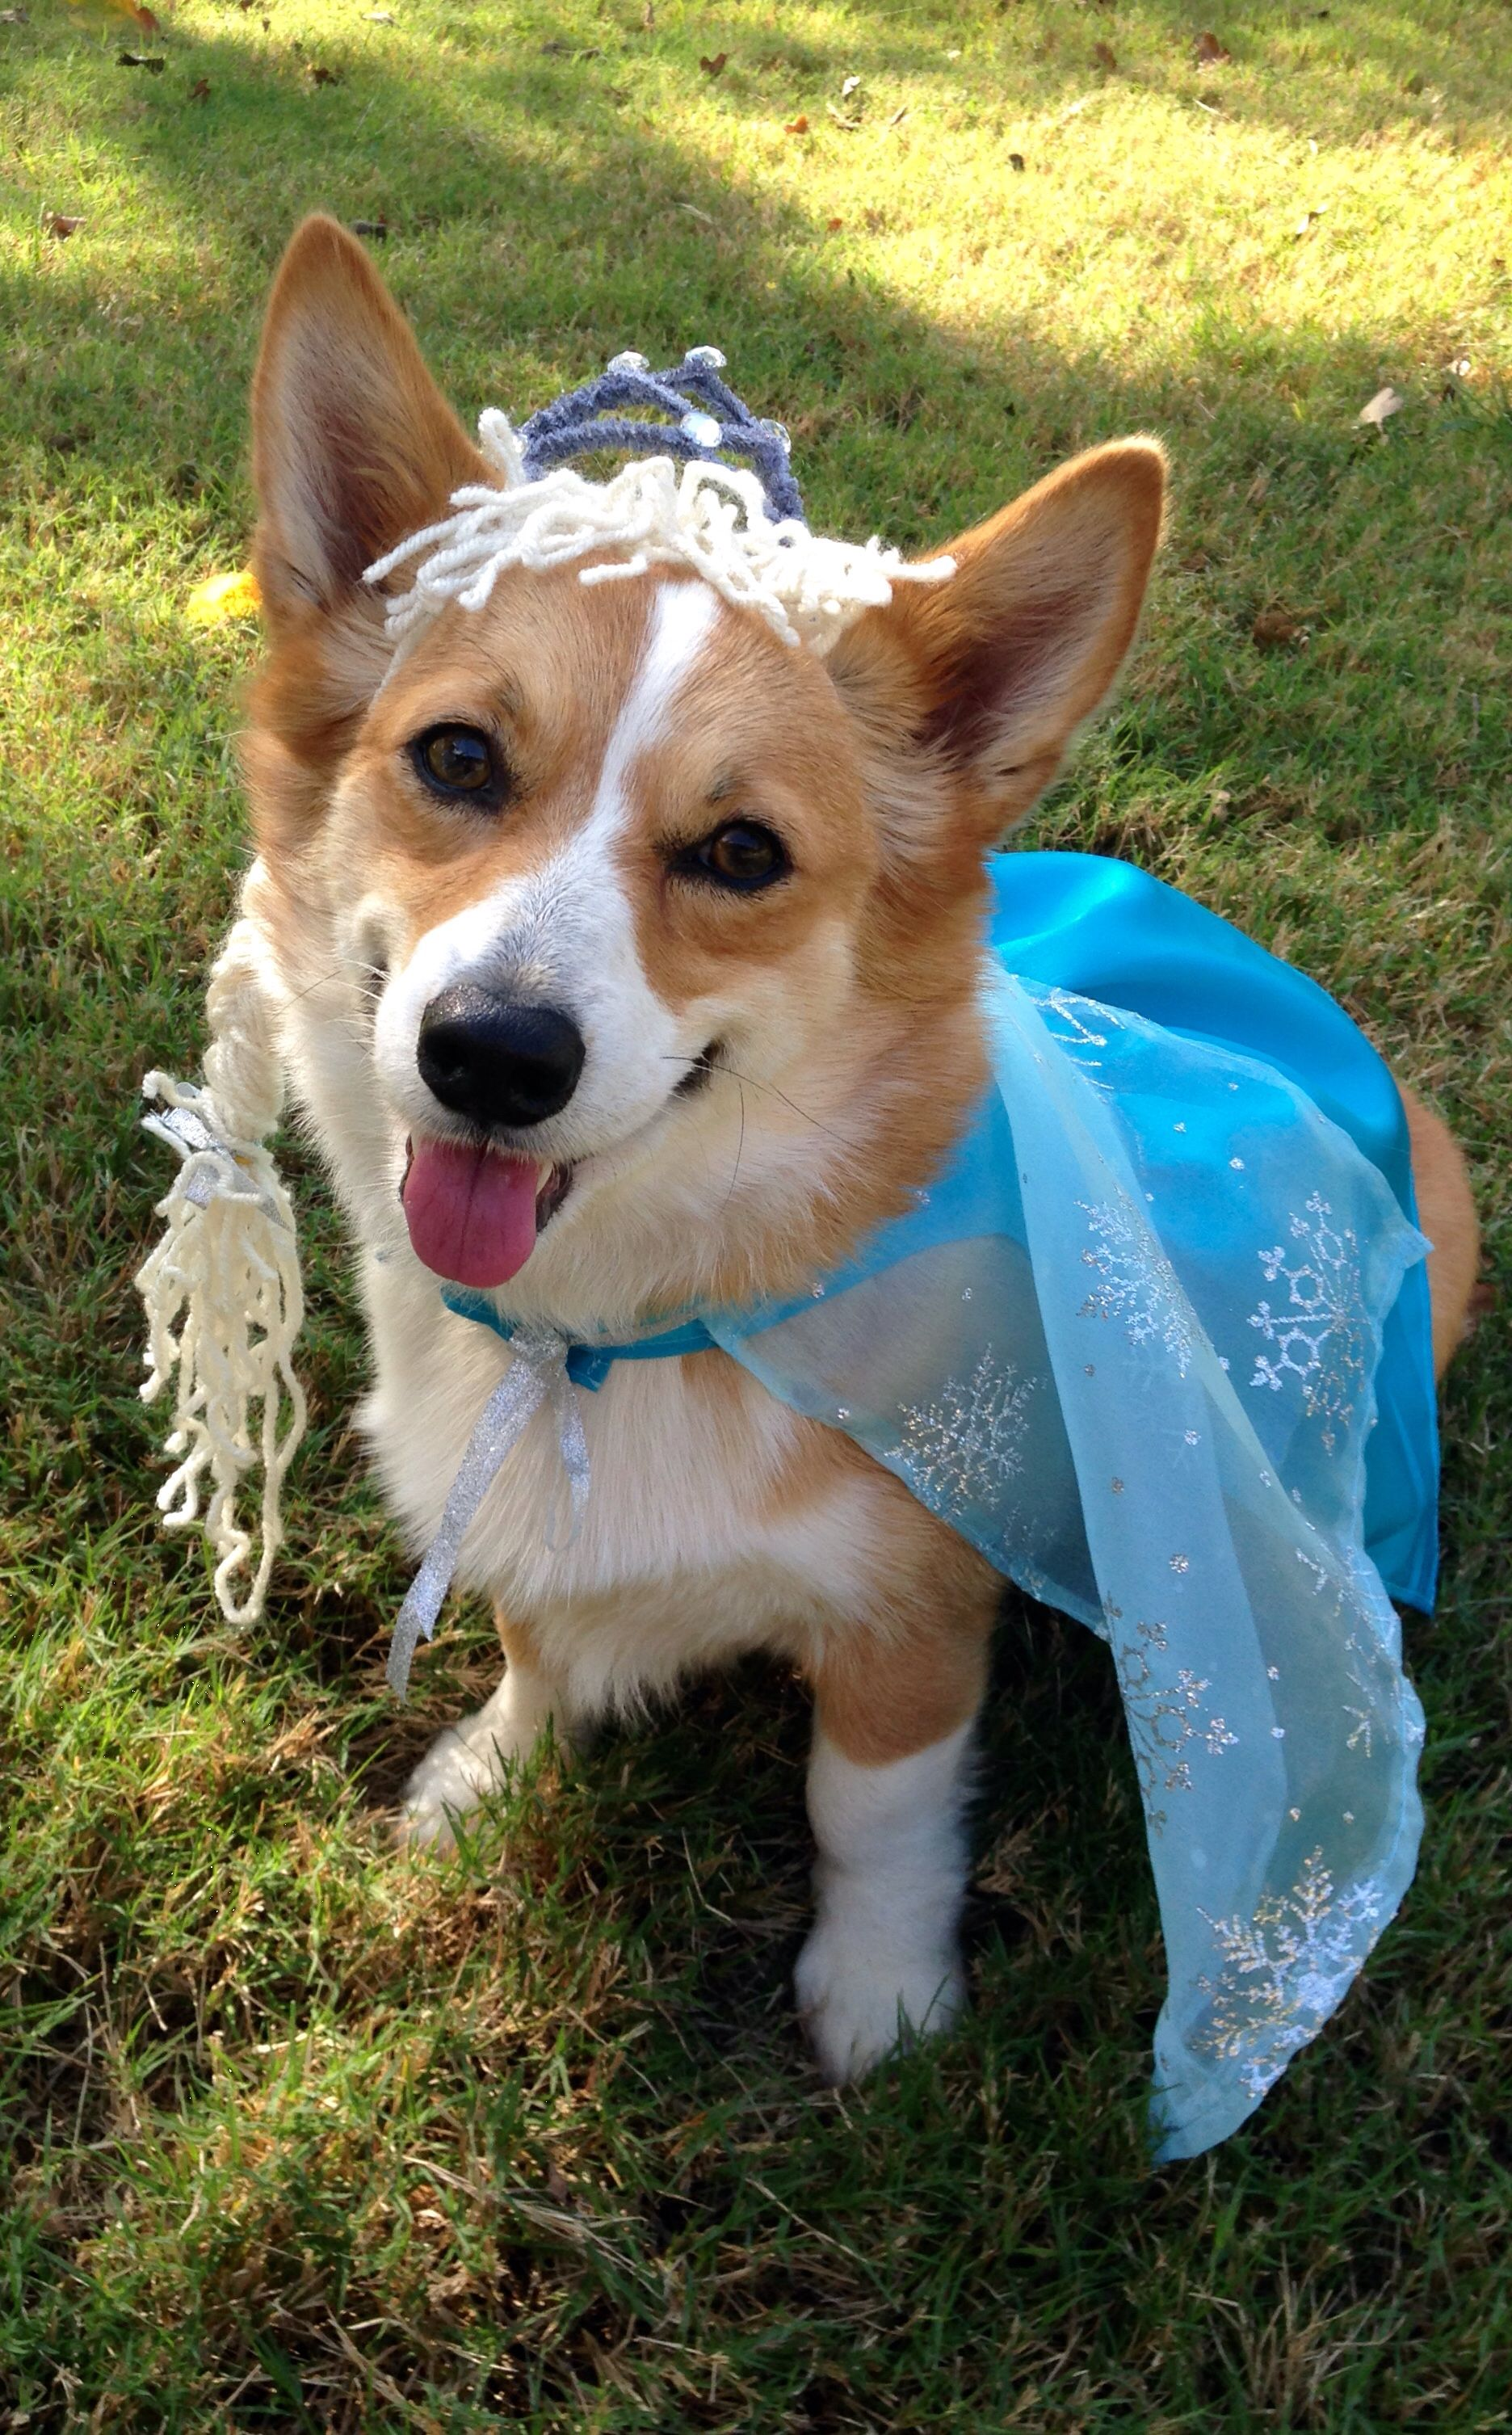 Our Frozen Corgi! #Halloween #Frozen #Corgi #dog #Elsa #Costume ...